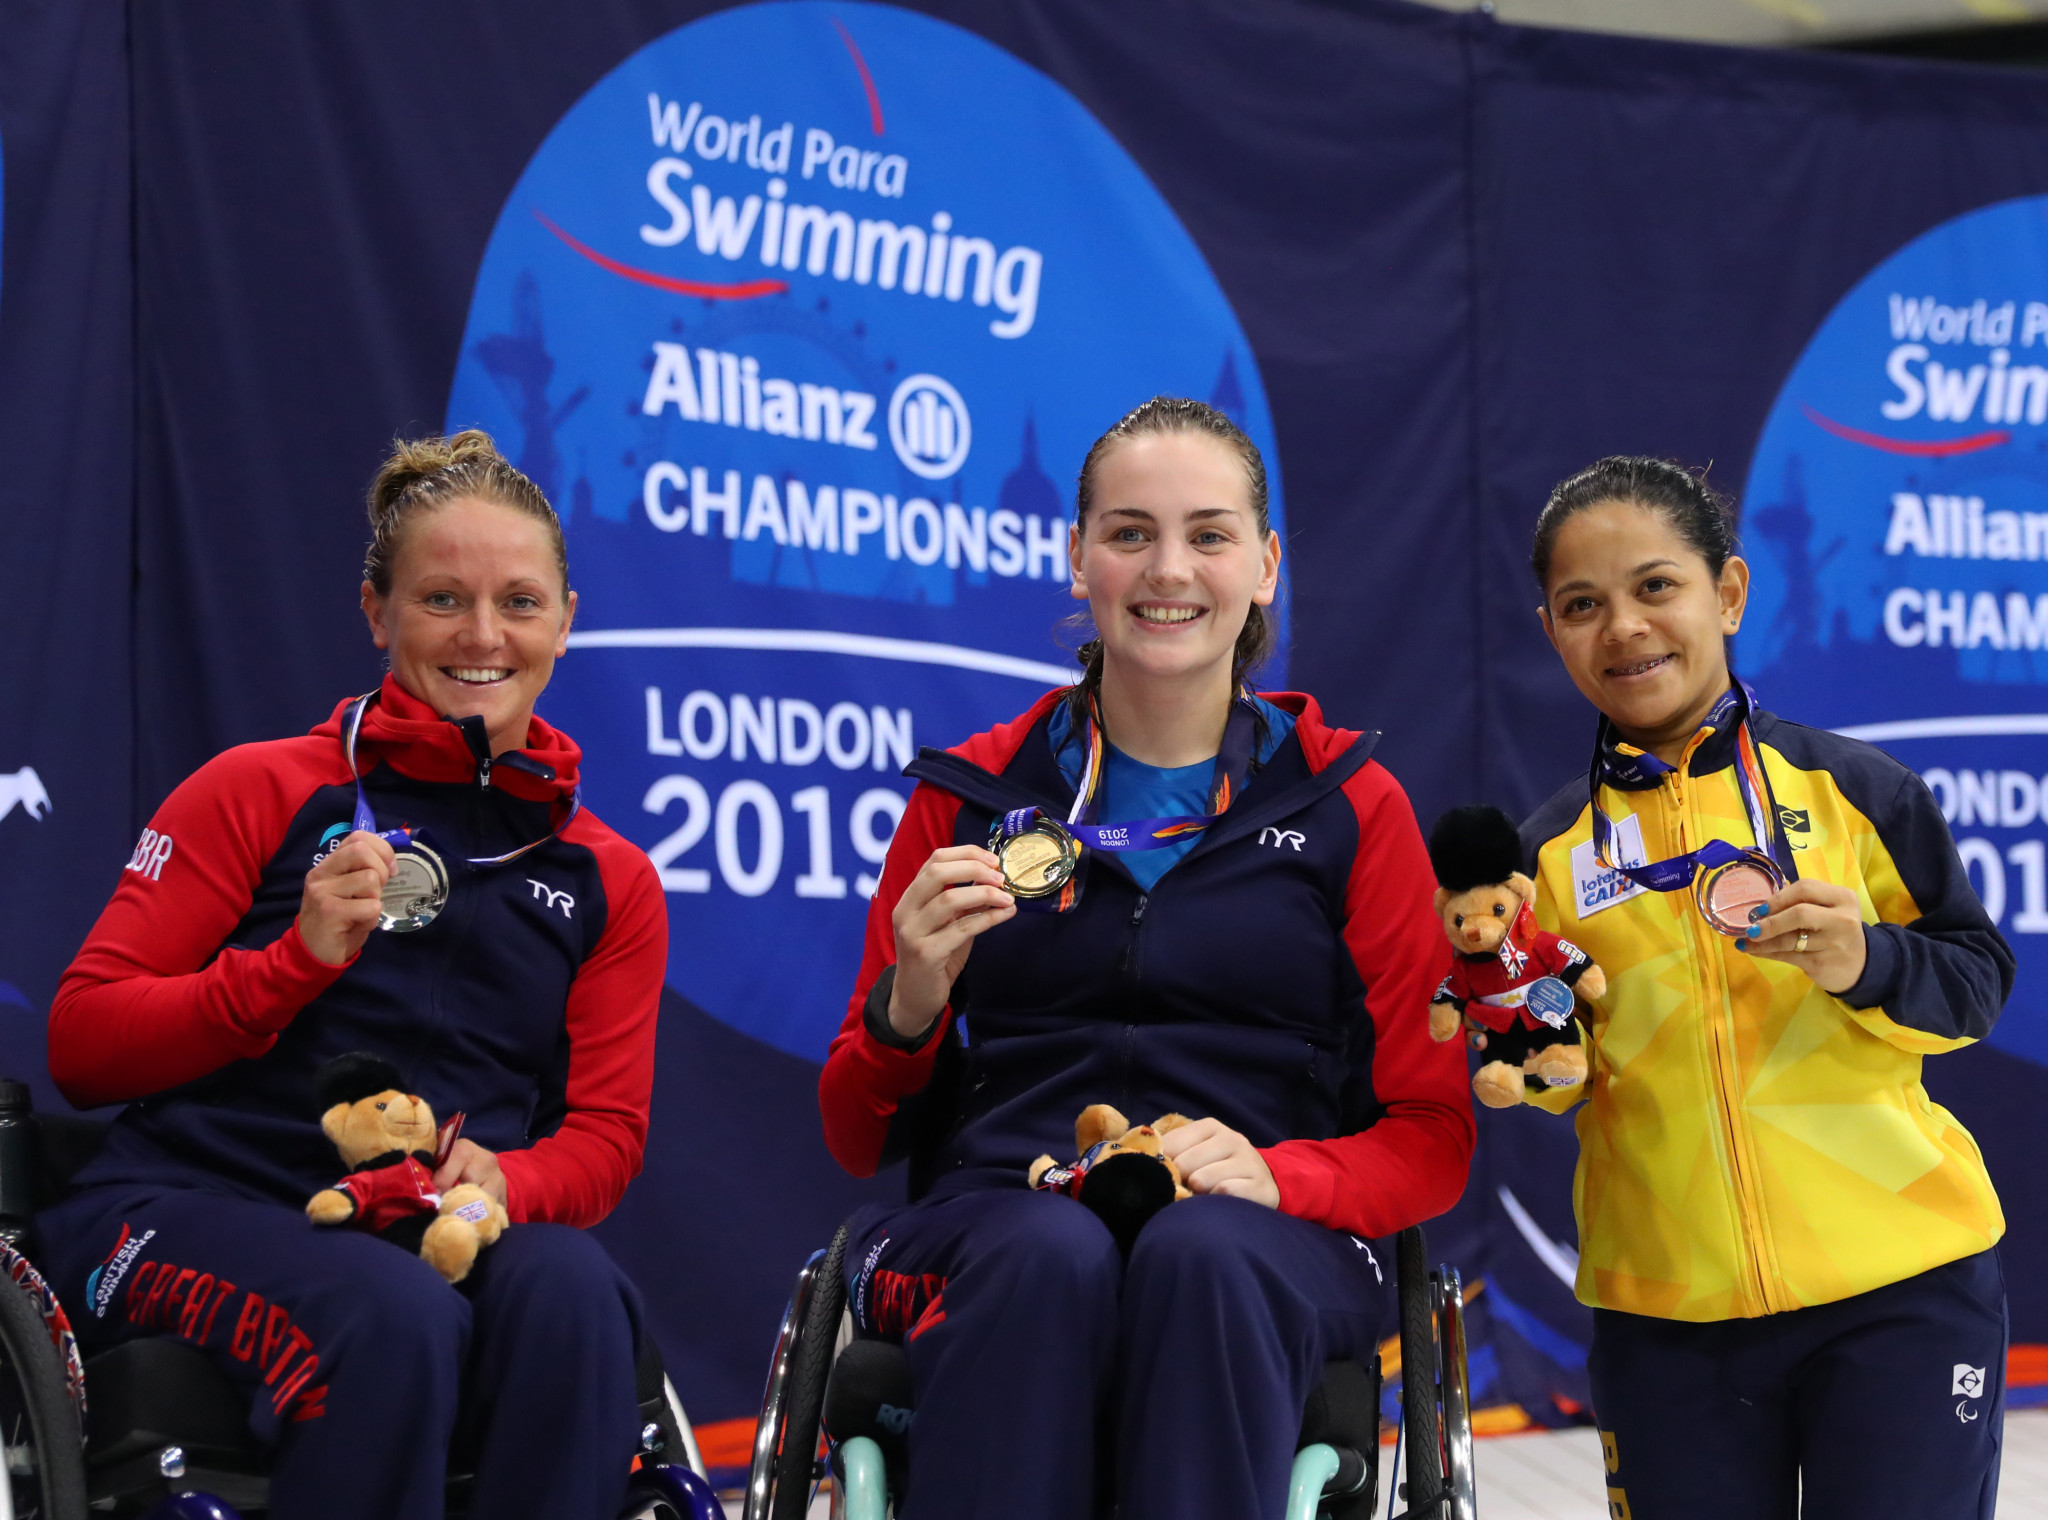 Suzanna Hext, left, won two medals at the 2019 World Para Swimming Championships in London, including silver in the women's 50 metres freestyle S5 event ©Getty Images